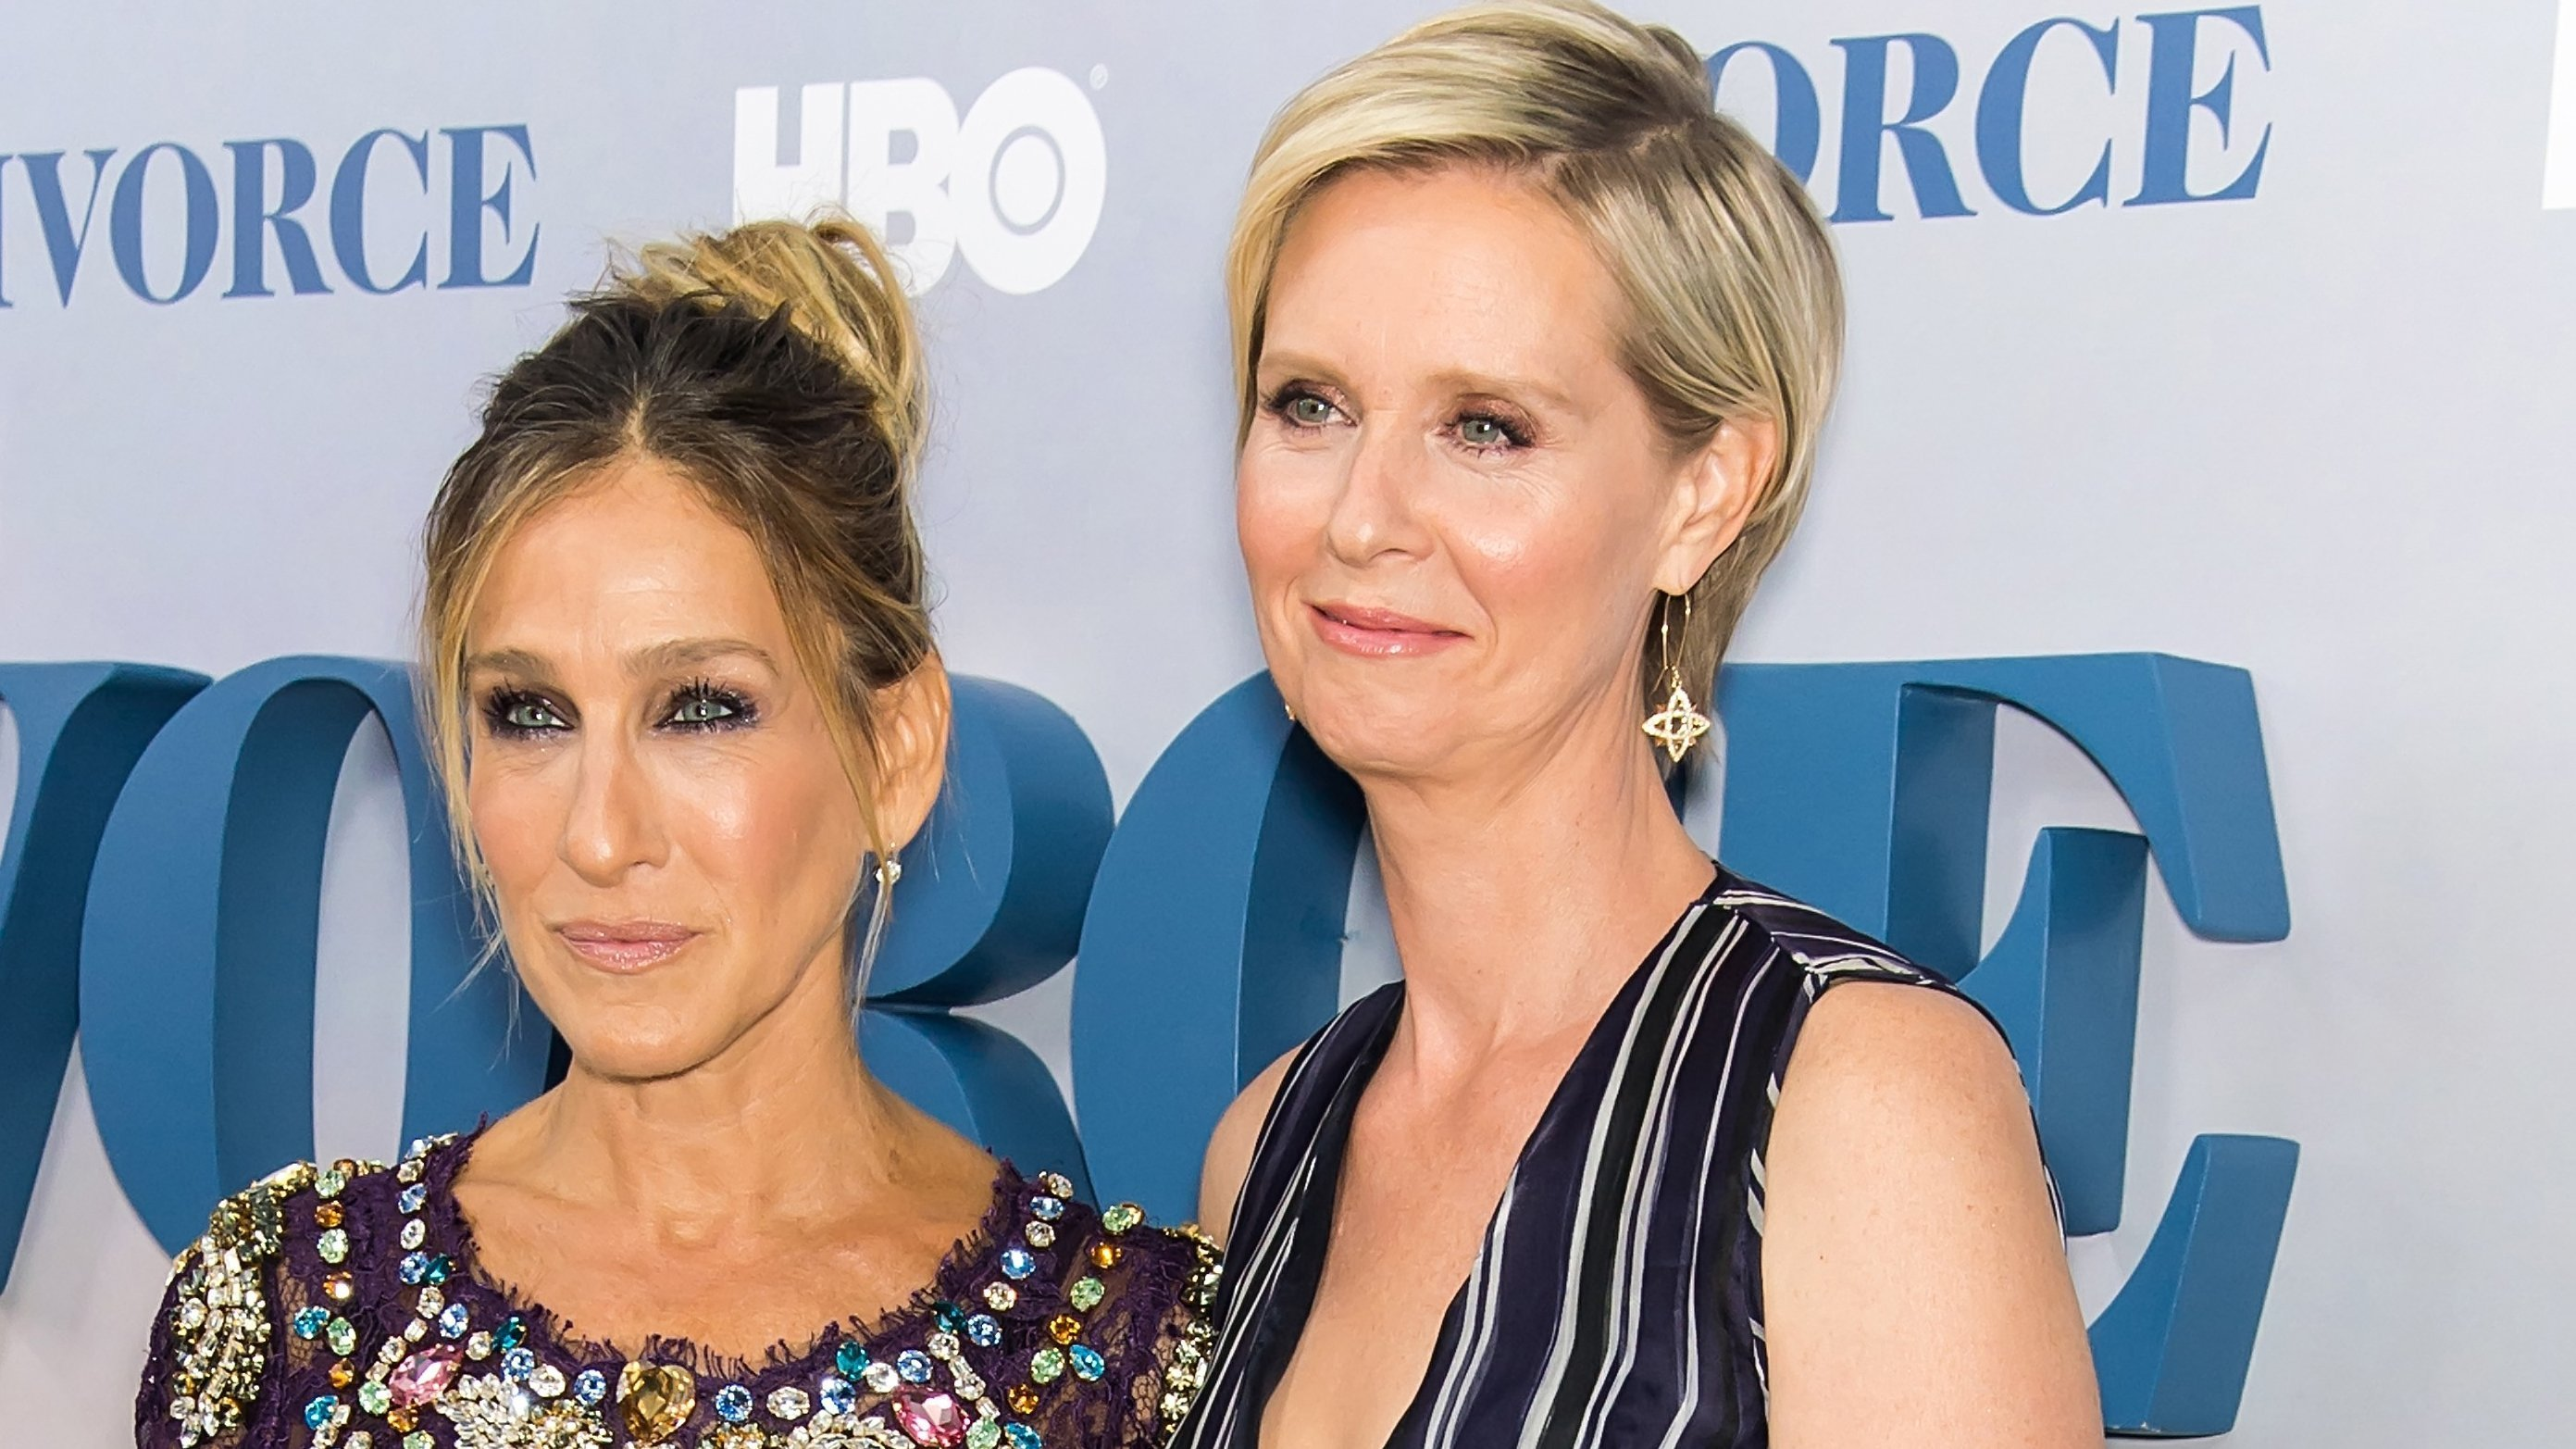 Sarah Jessica Parker endorses Cynthia Nixon for governor of NY